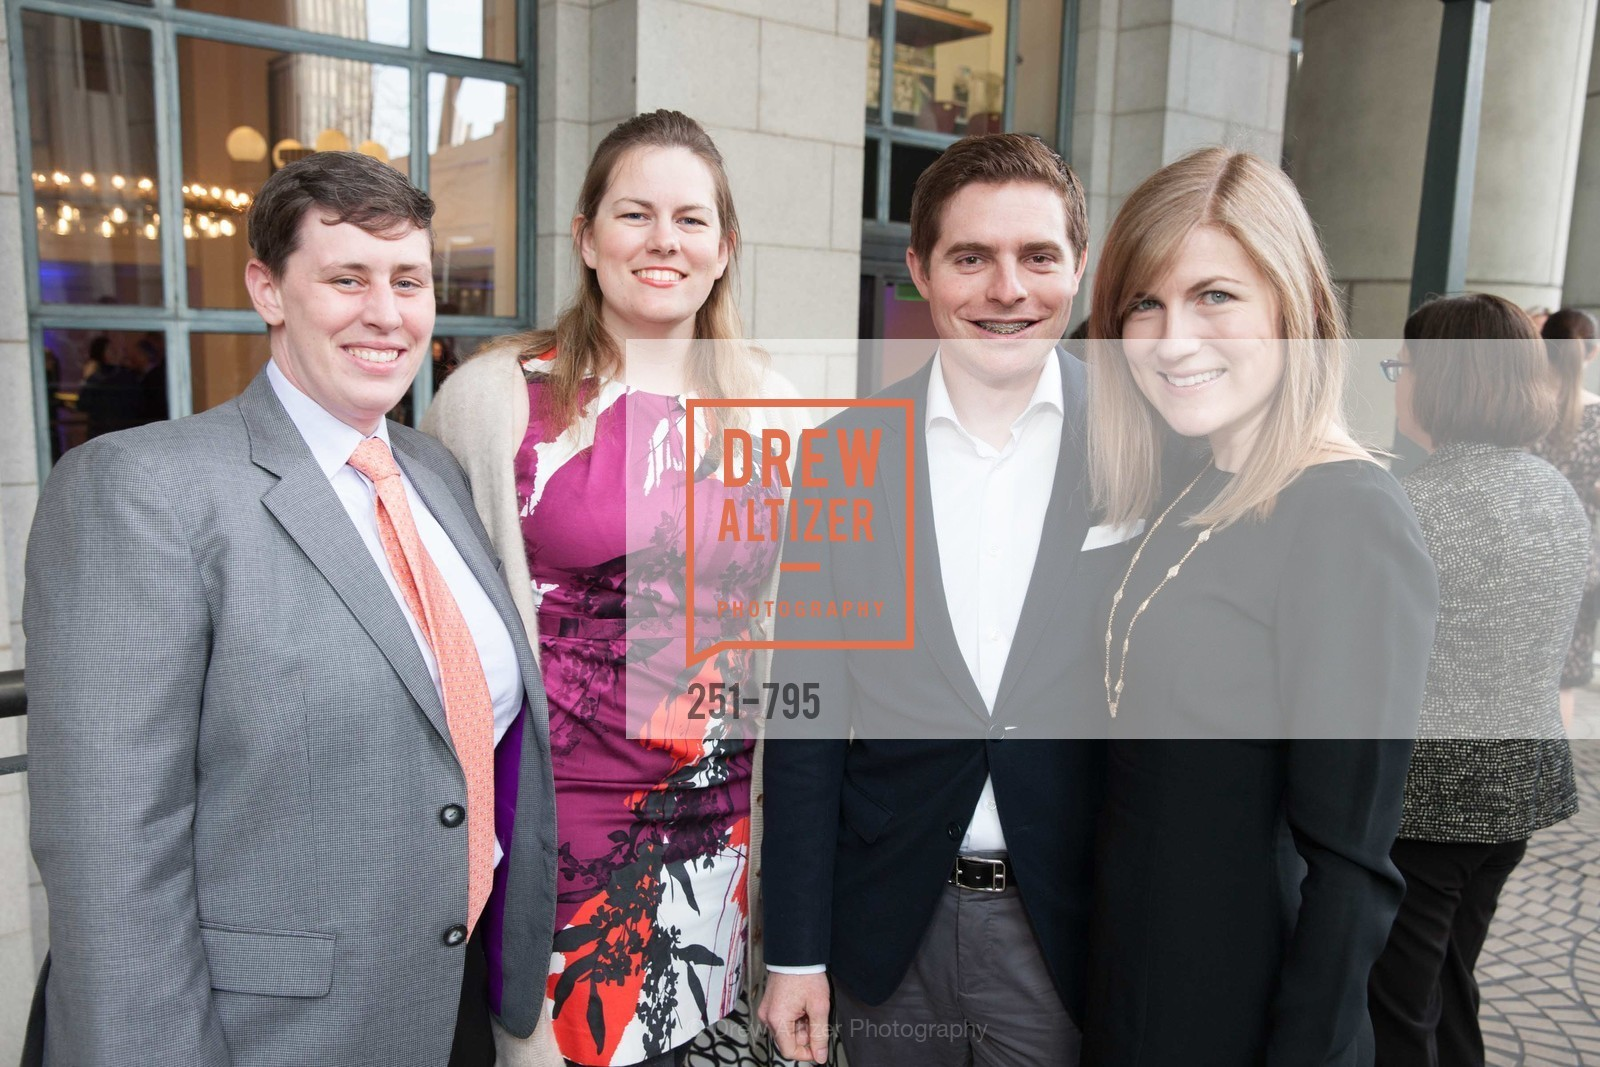 Jessica Milligan, Claire Milligan, Drew Wall, Lindsey Milligan Wall, COMPASS FAMILY SERVICES Annual Spring Benefit:  Every Family Needs A Home, US, April 22nd, 2015,Drew Altizer, Drew Altizer Photography, full-service agency, private events, San Francisco photographer, photographer california